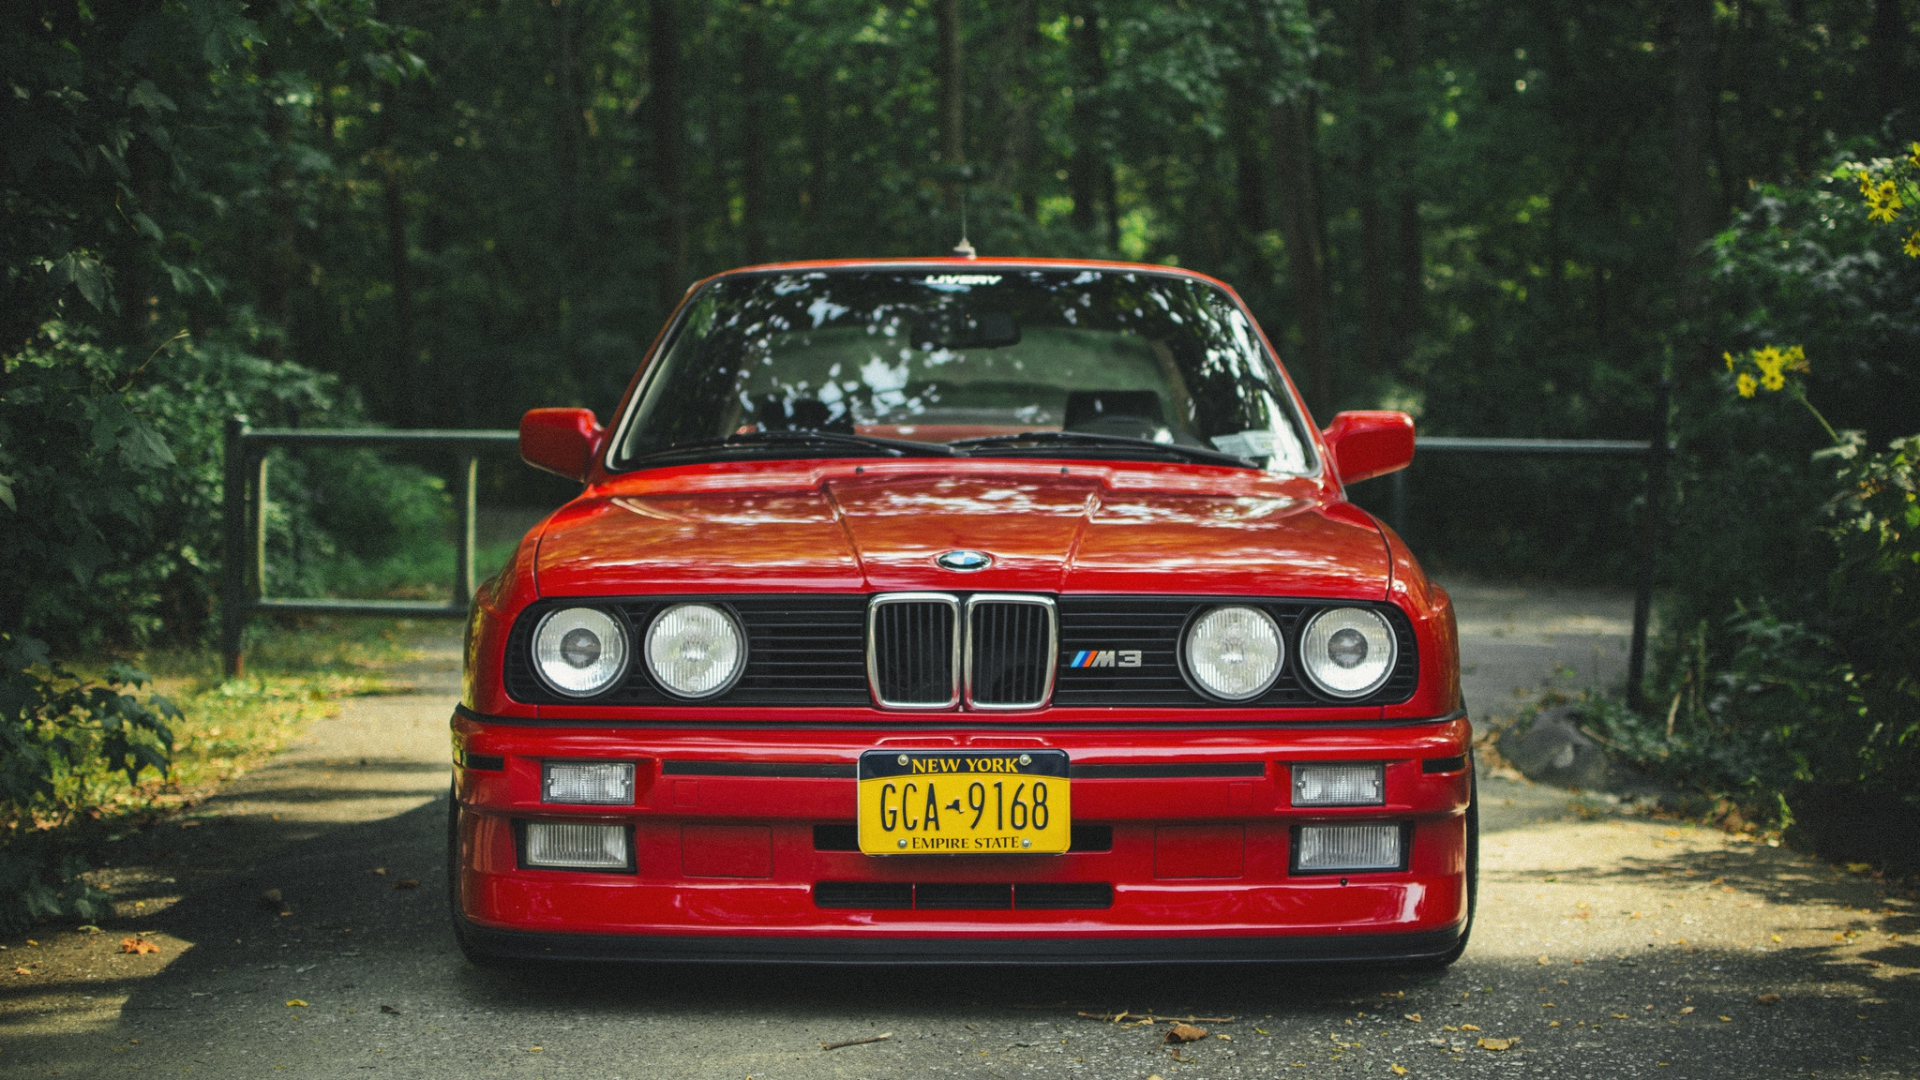 Download Wallpaper 1920x1080 Bmw E30 M3 Red Tuning